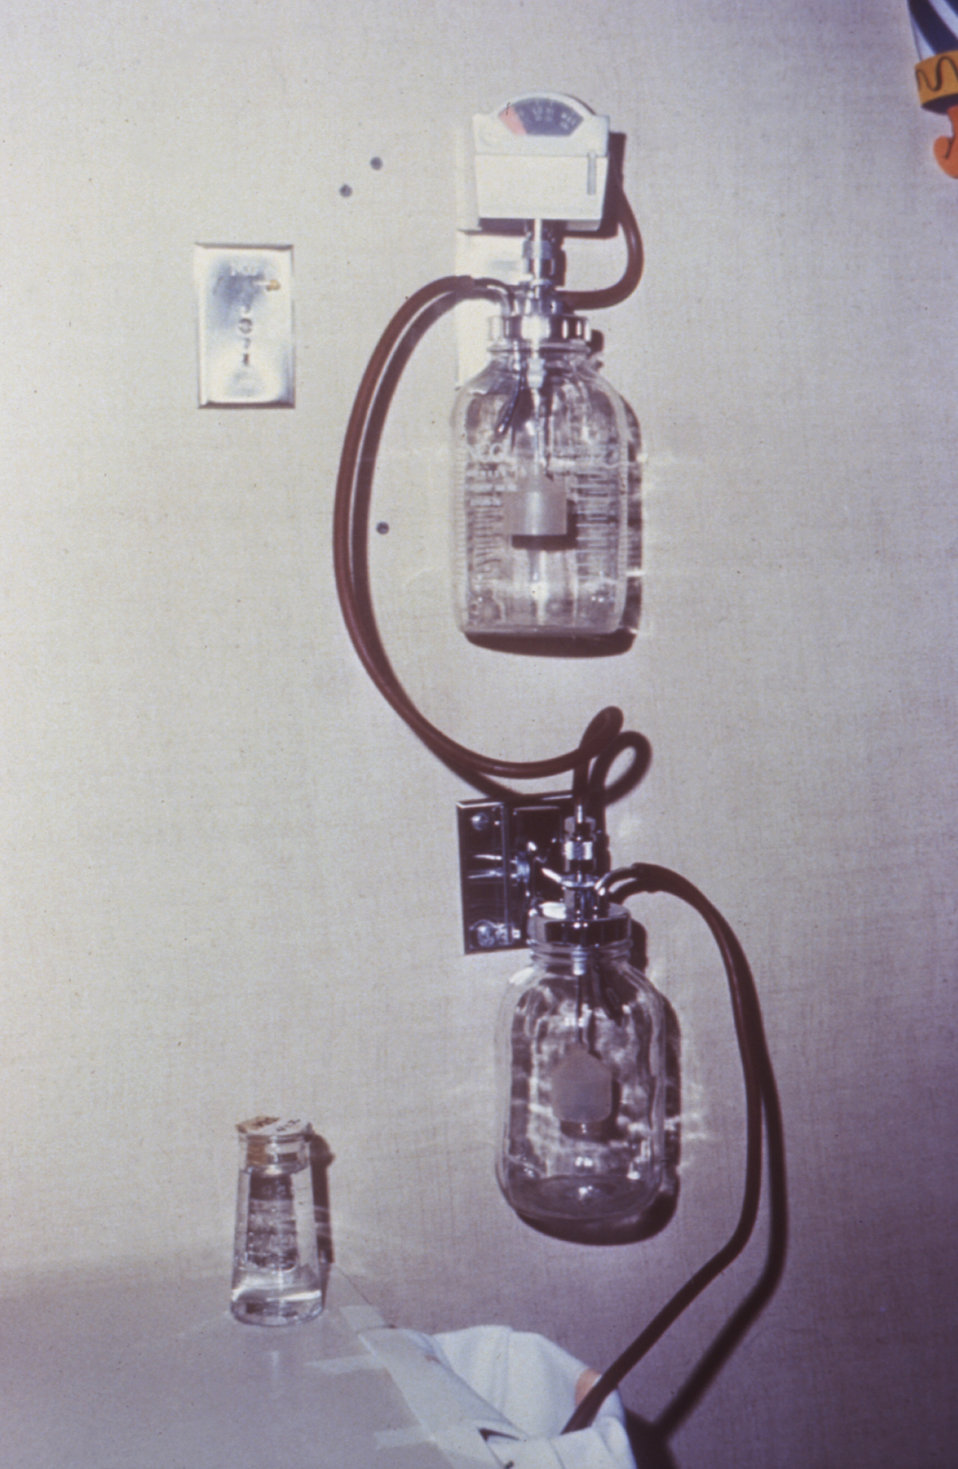 This is a 1970 photograph inside a hospital room depicting a wall-mounted suction bottle.